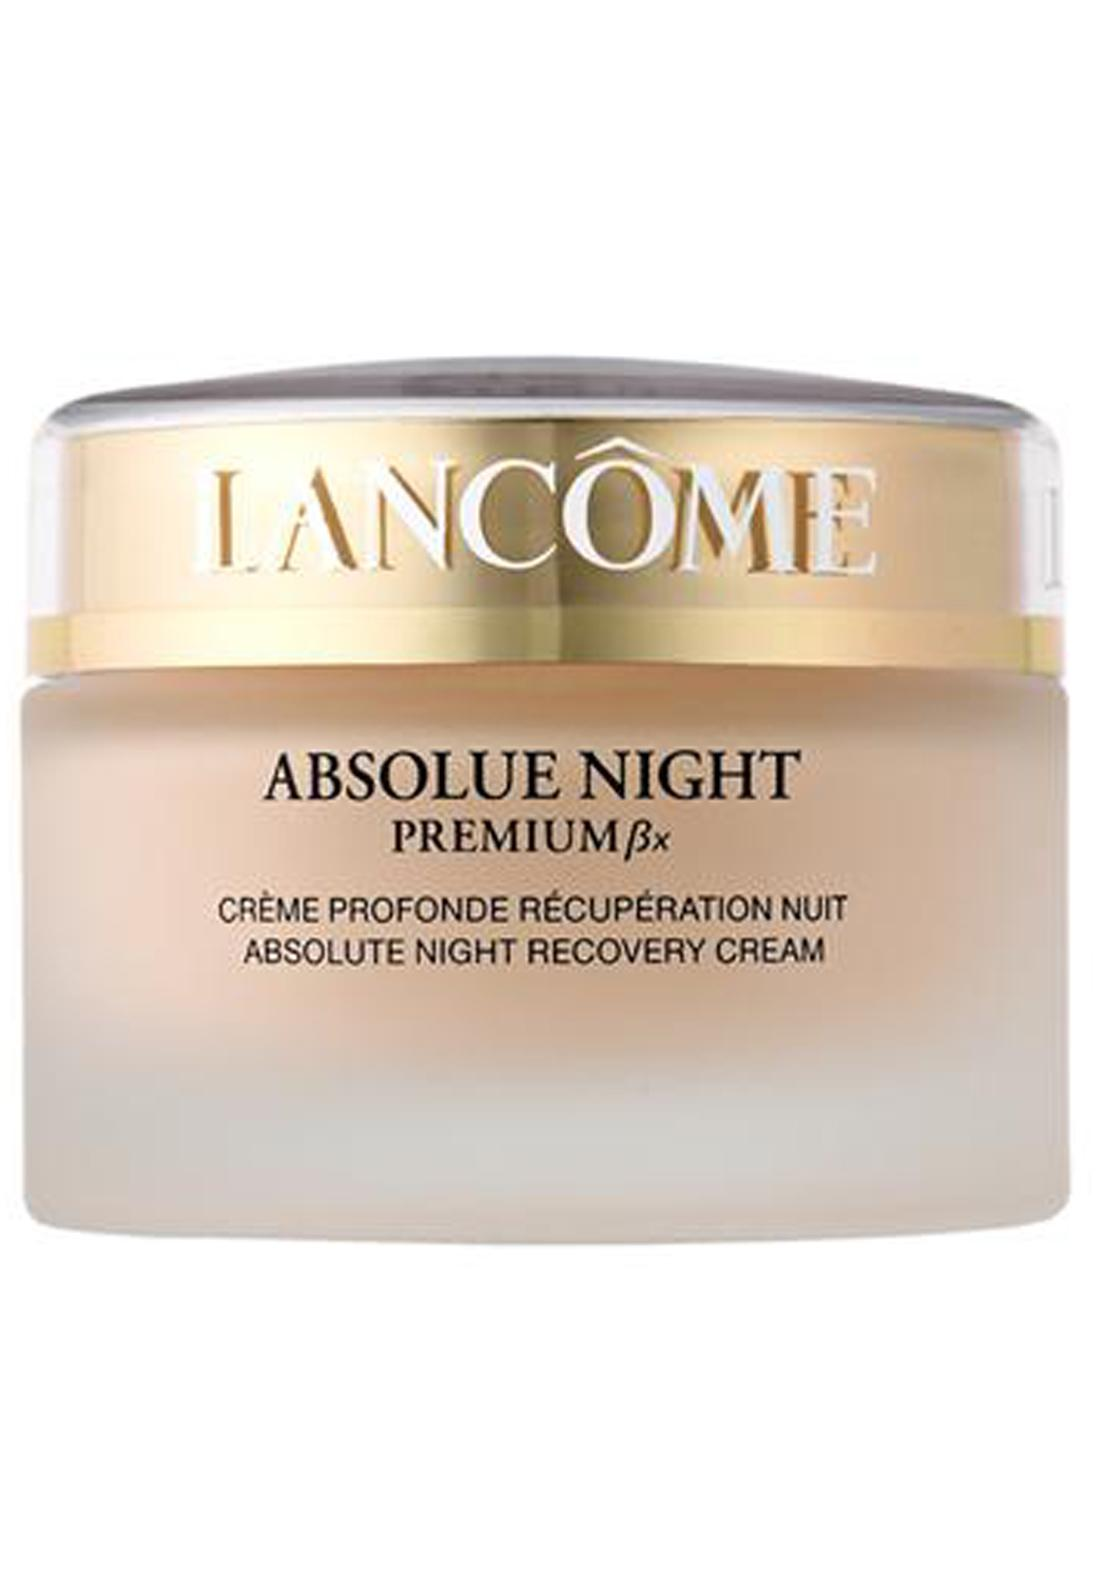 Lancome Absolue Nuit Premium Bx Night Cream, 75ml